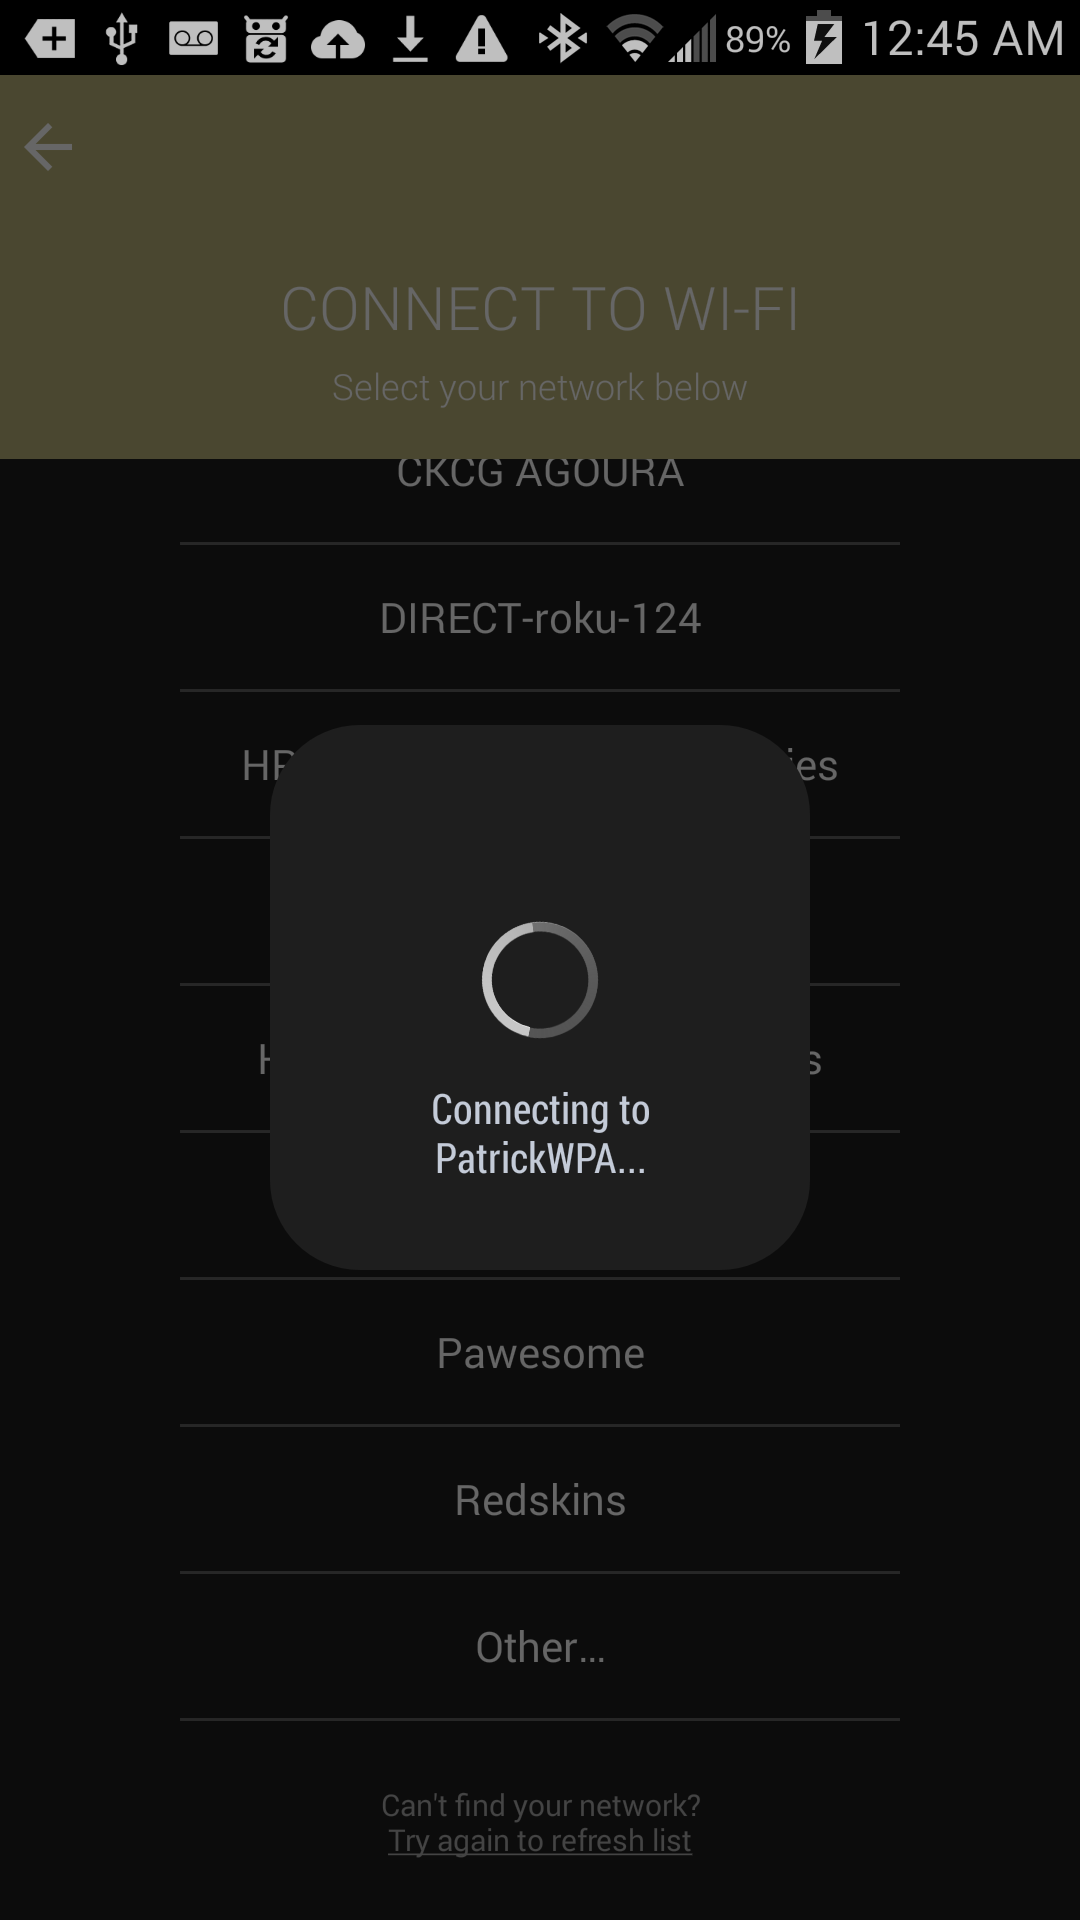 Connecting to PatrickWPA...